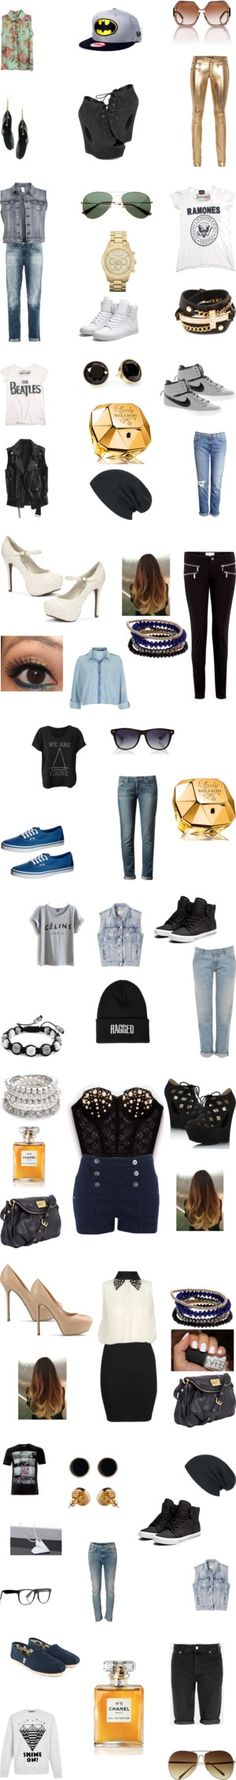 """Fiction"" by chloe-mussard ❤ liked on Polyvore"